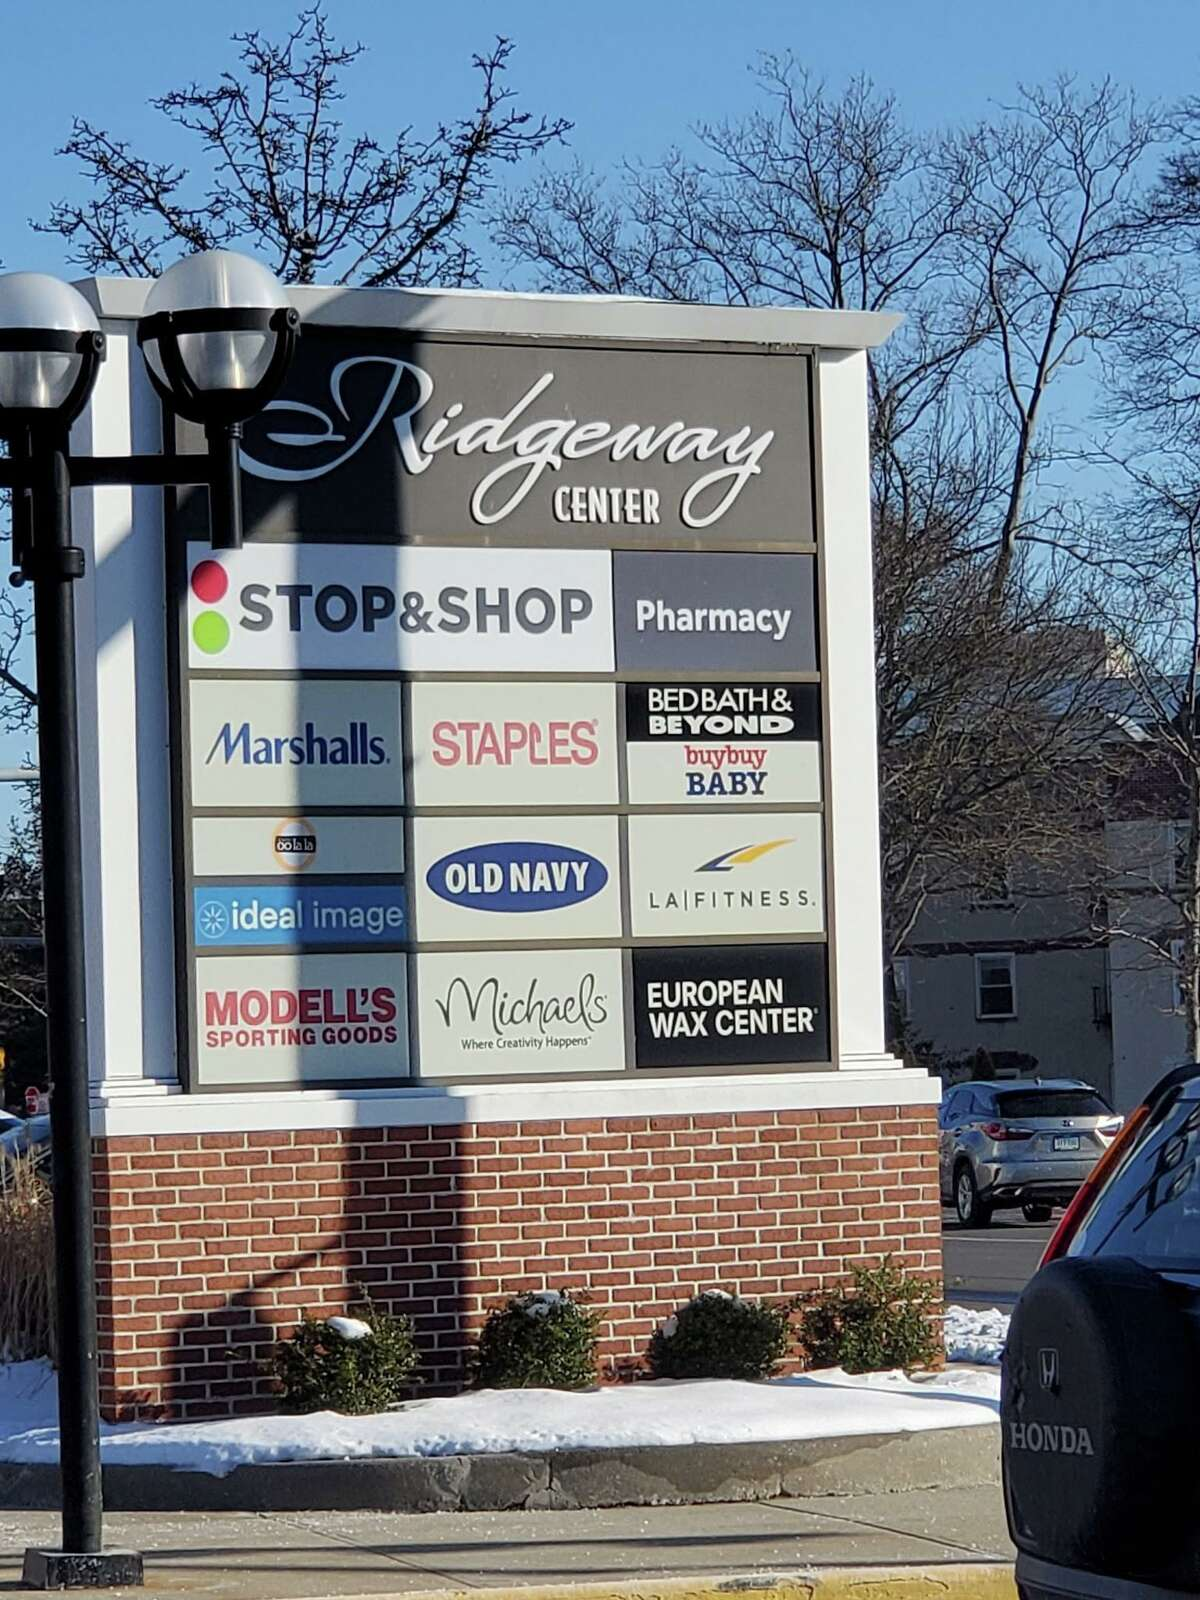 Gofer Ice Cream will join the lineup of shops at the Ridgeway Shopping Center at 2367 Summer St. in Stamford.